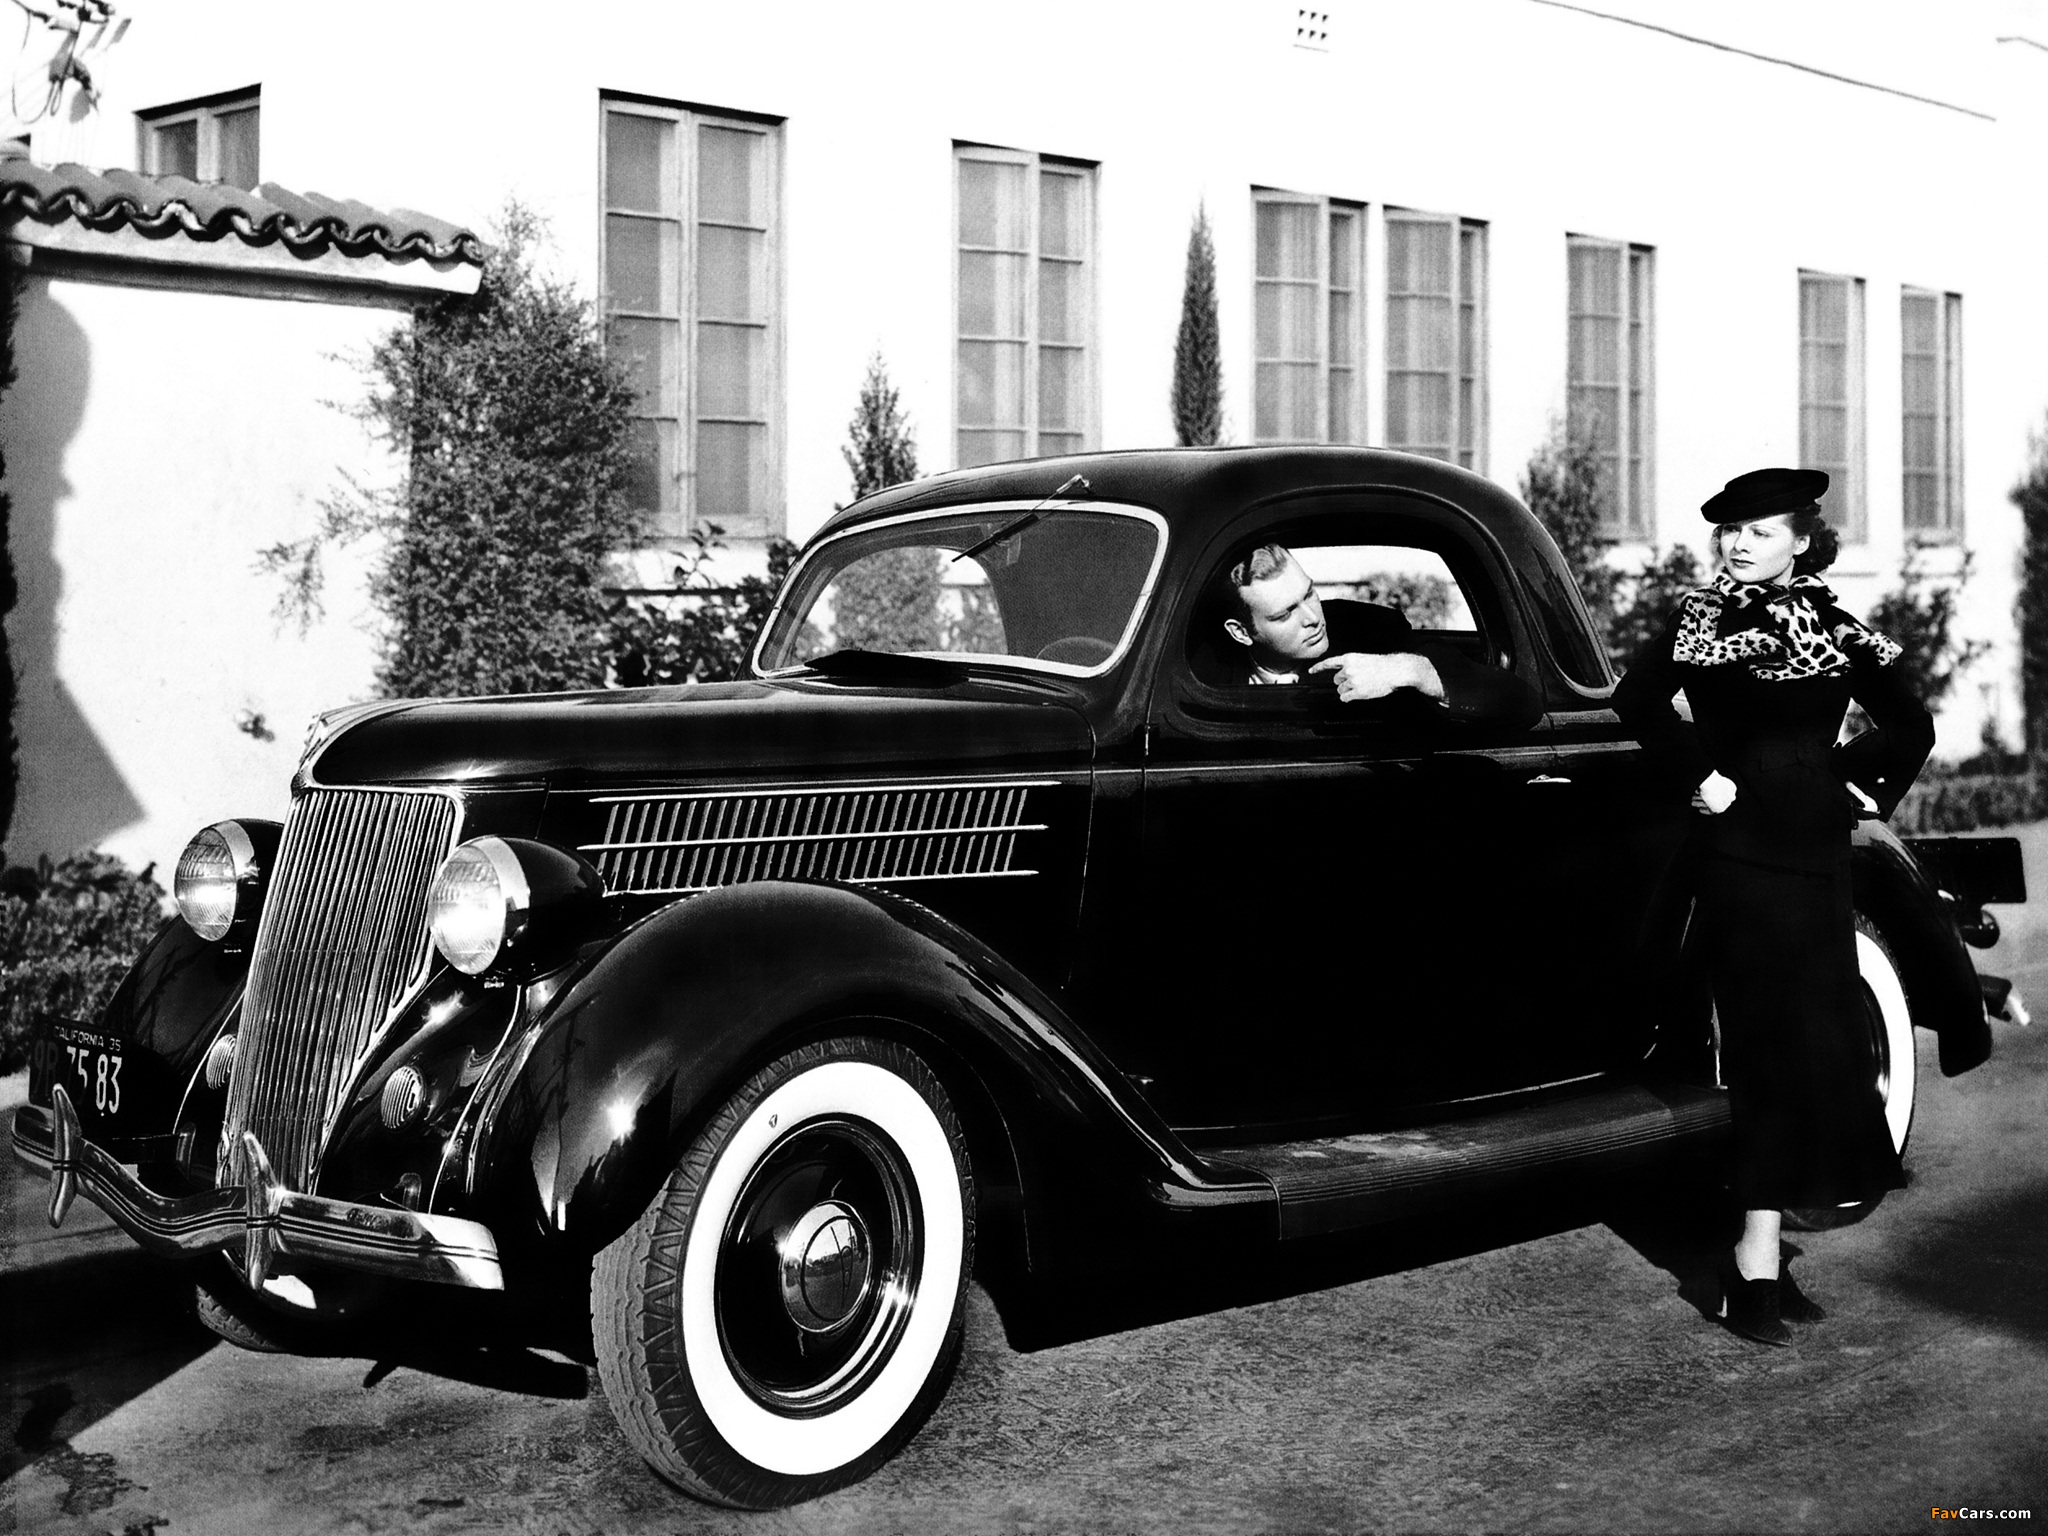 1936 ford 3 window coupe photo autos post for 1936 ford 3 window coupe for sale craigslist